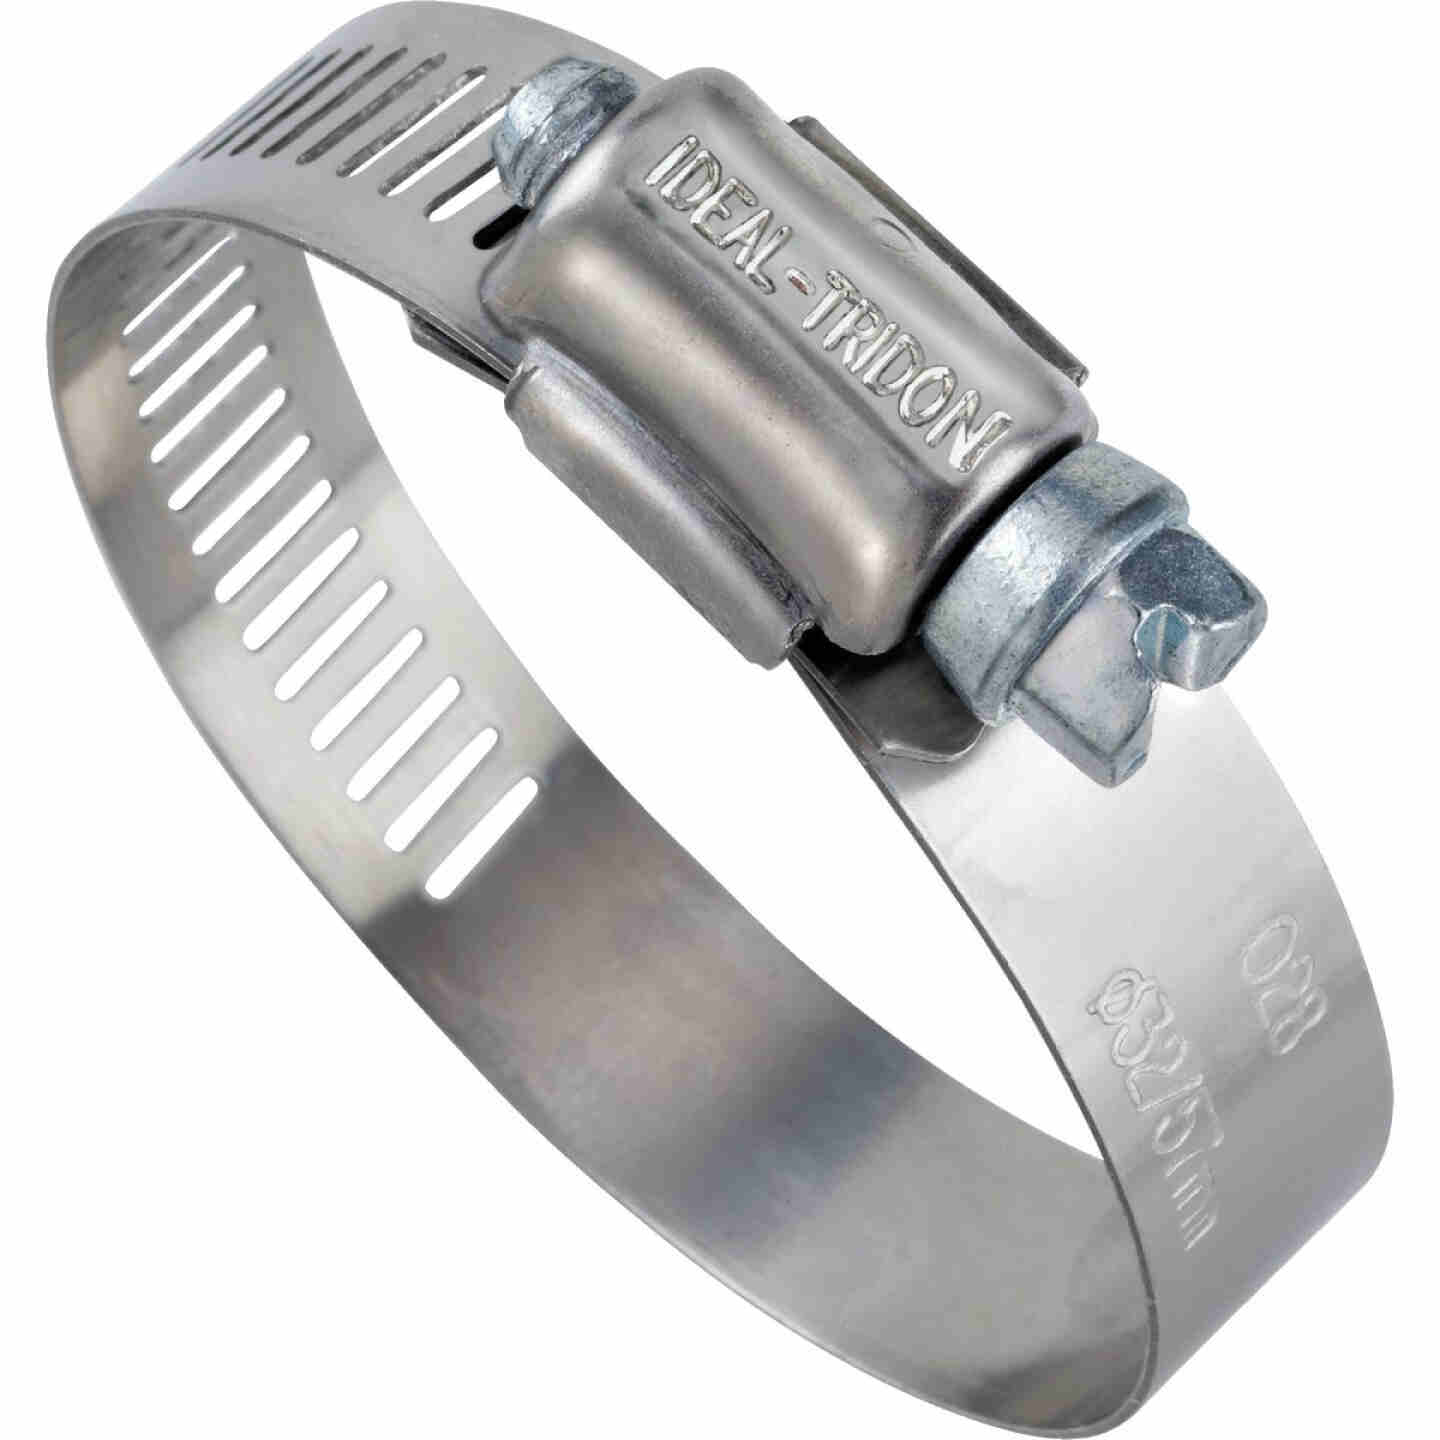 Ideal 3/4 In. - 1-3/4 In. 57 Stainless Steel Hose Clamp with Zinc-Plated Carbon Steel Screw Image 1